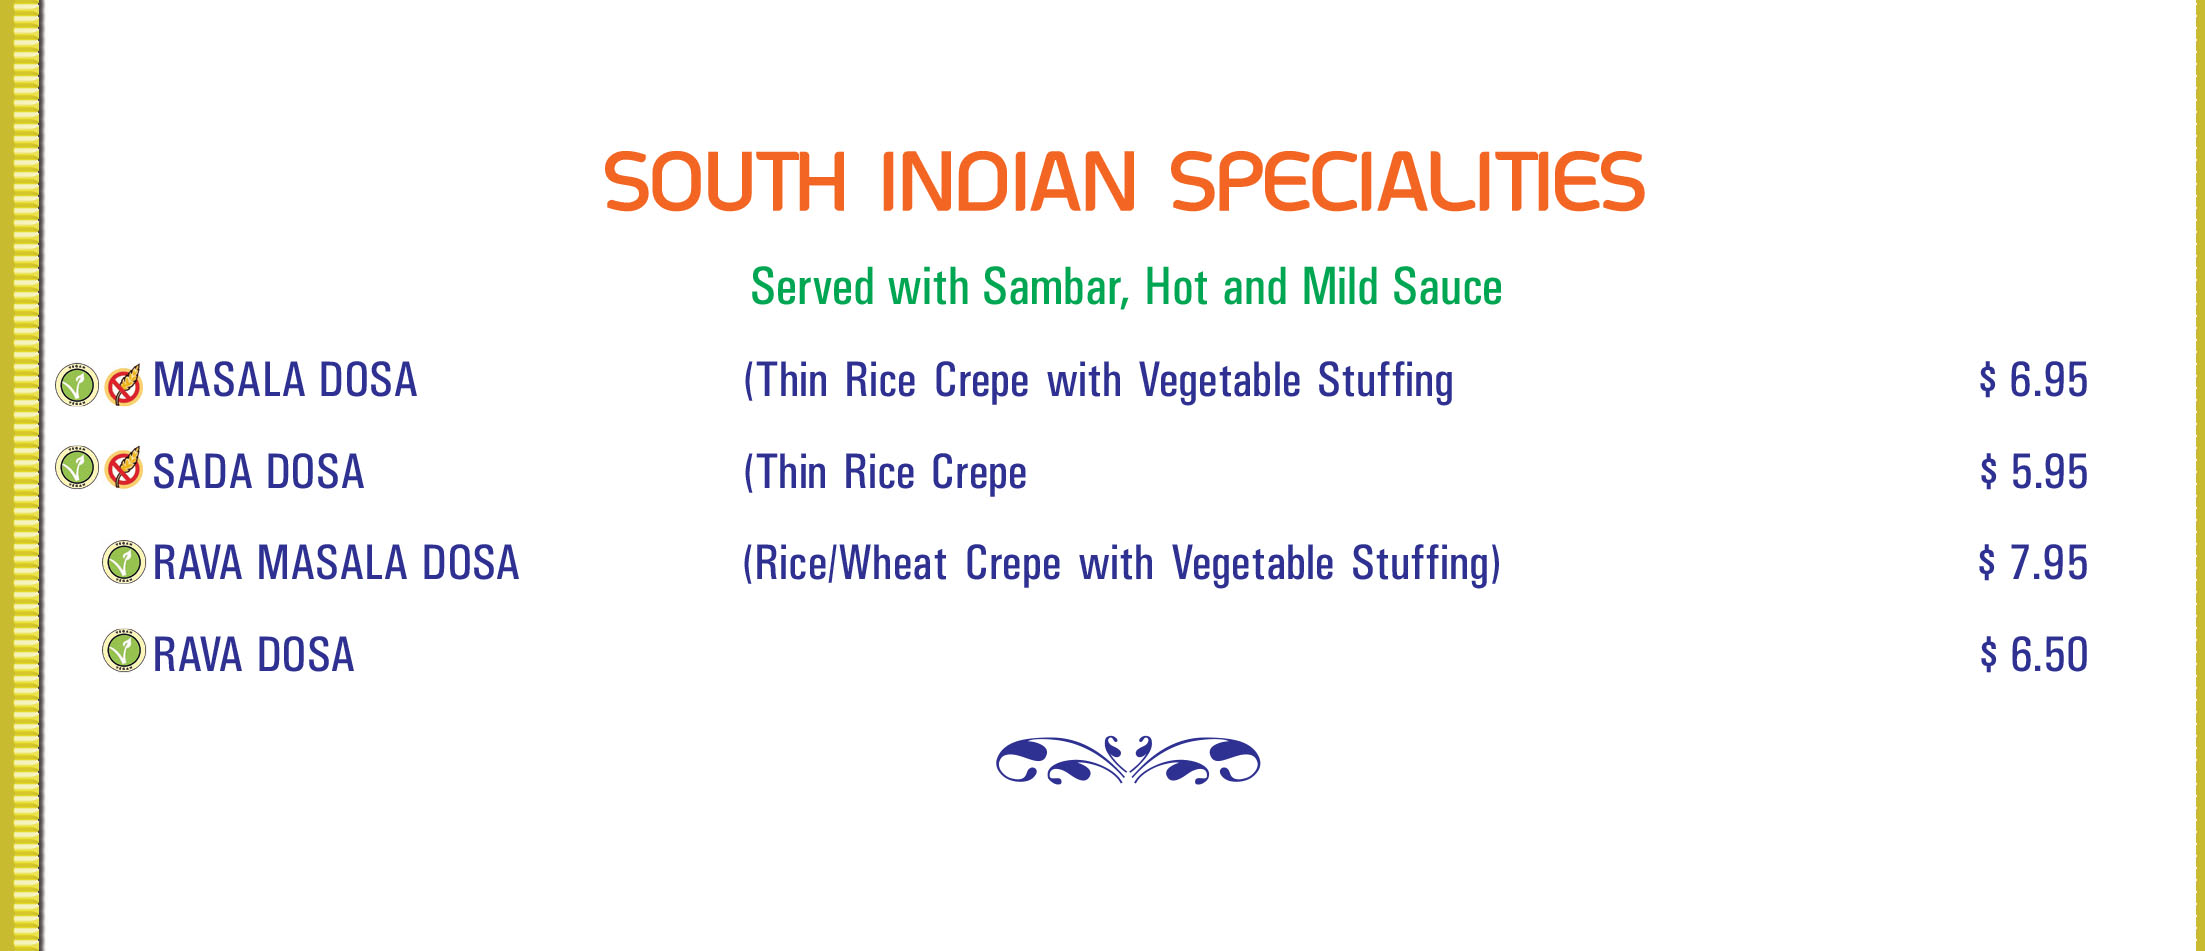 South Indian Specialities